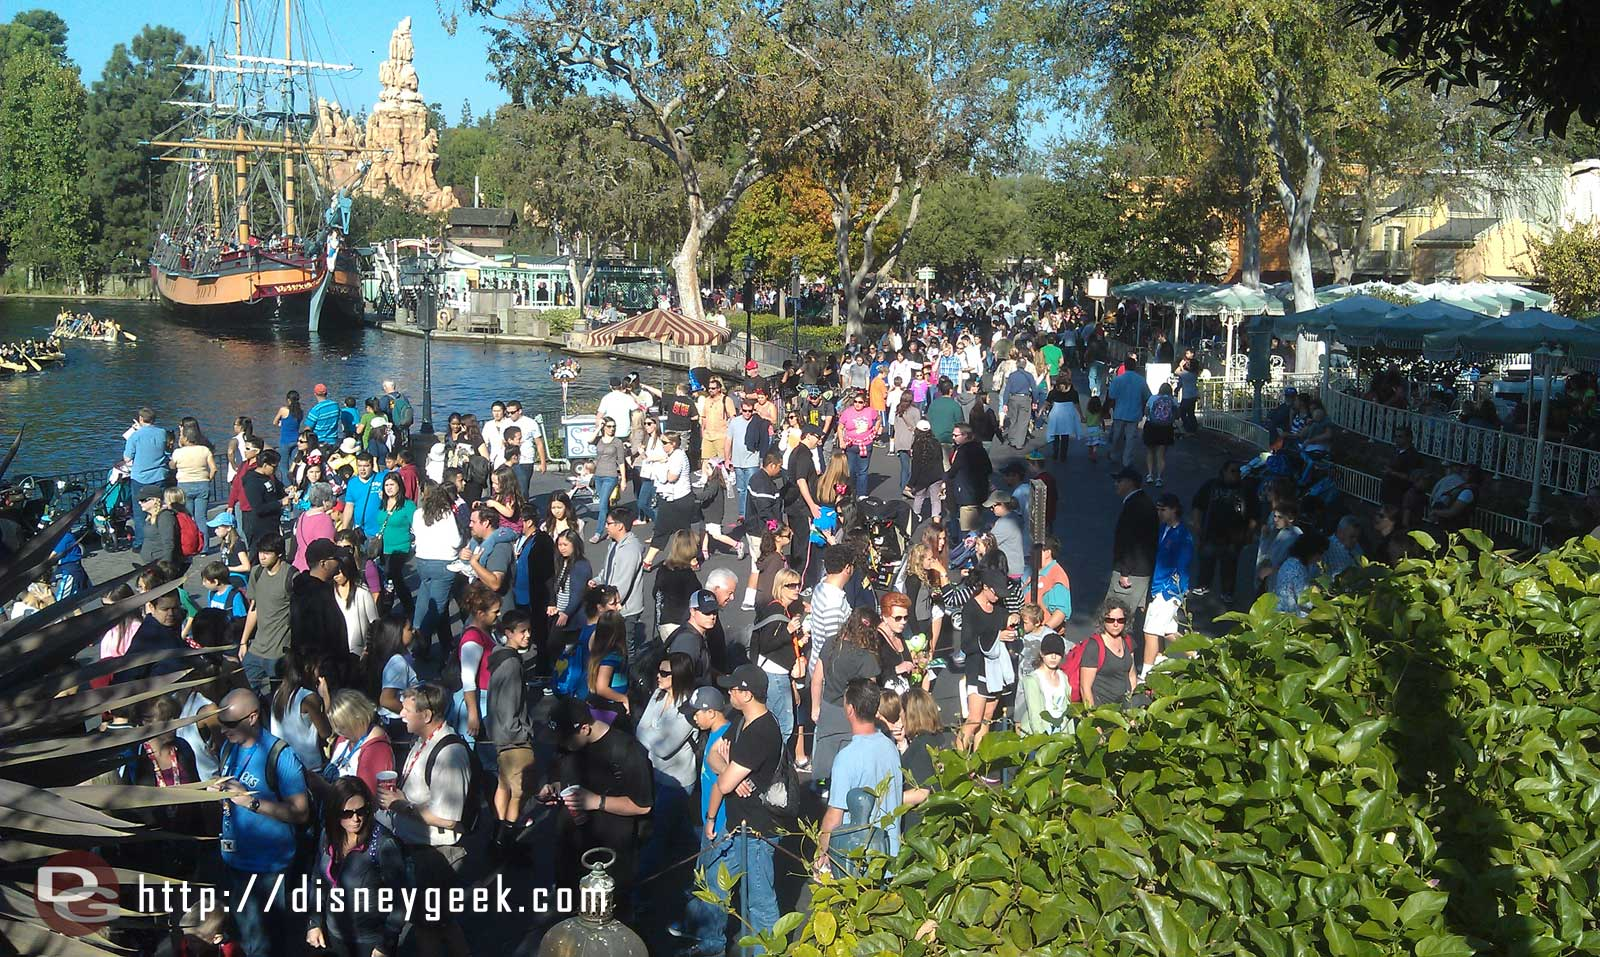 The view from the Pirates bridge toward Frontierland.  A healthy crowd in the park this afternoon.